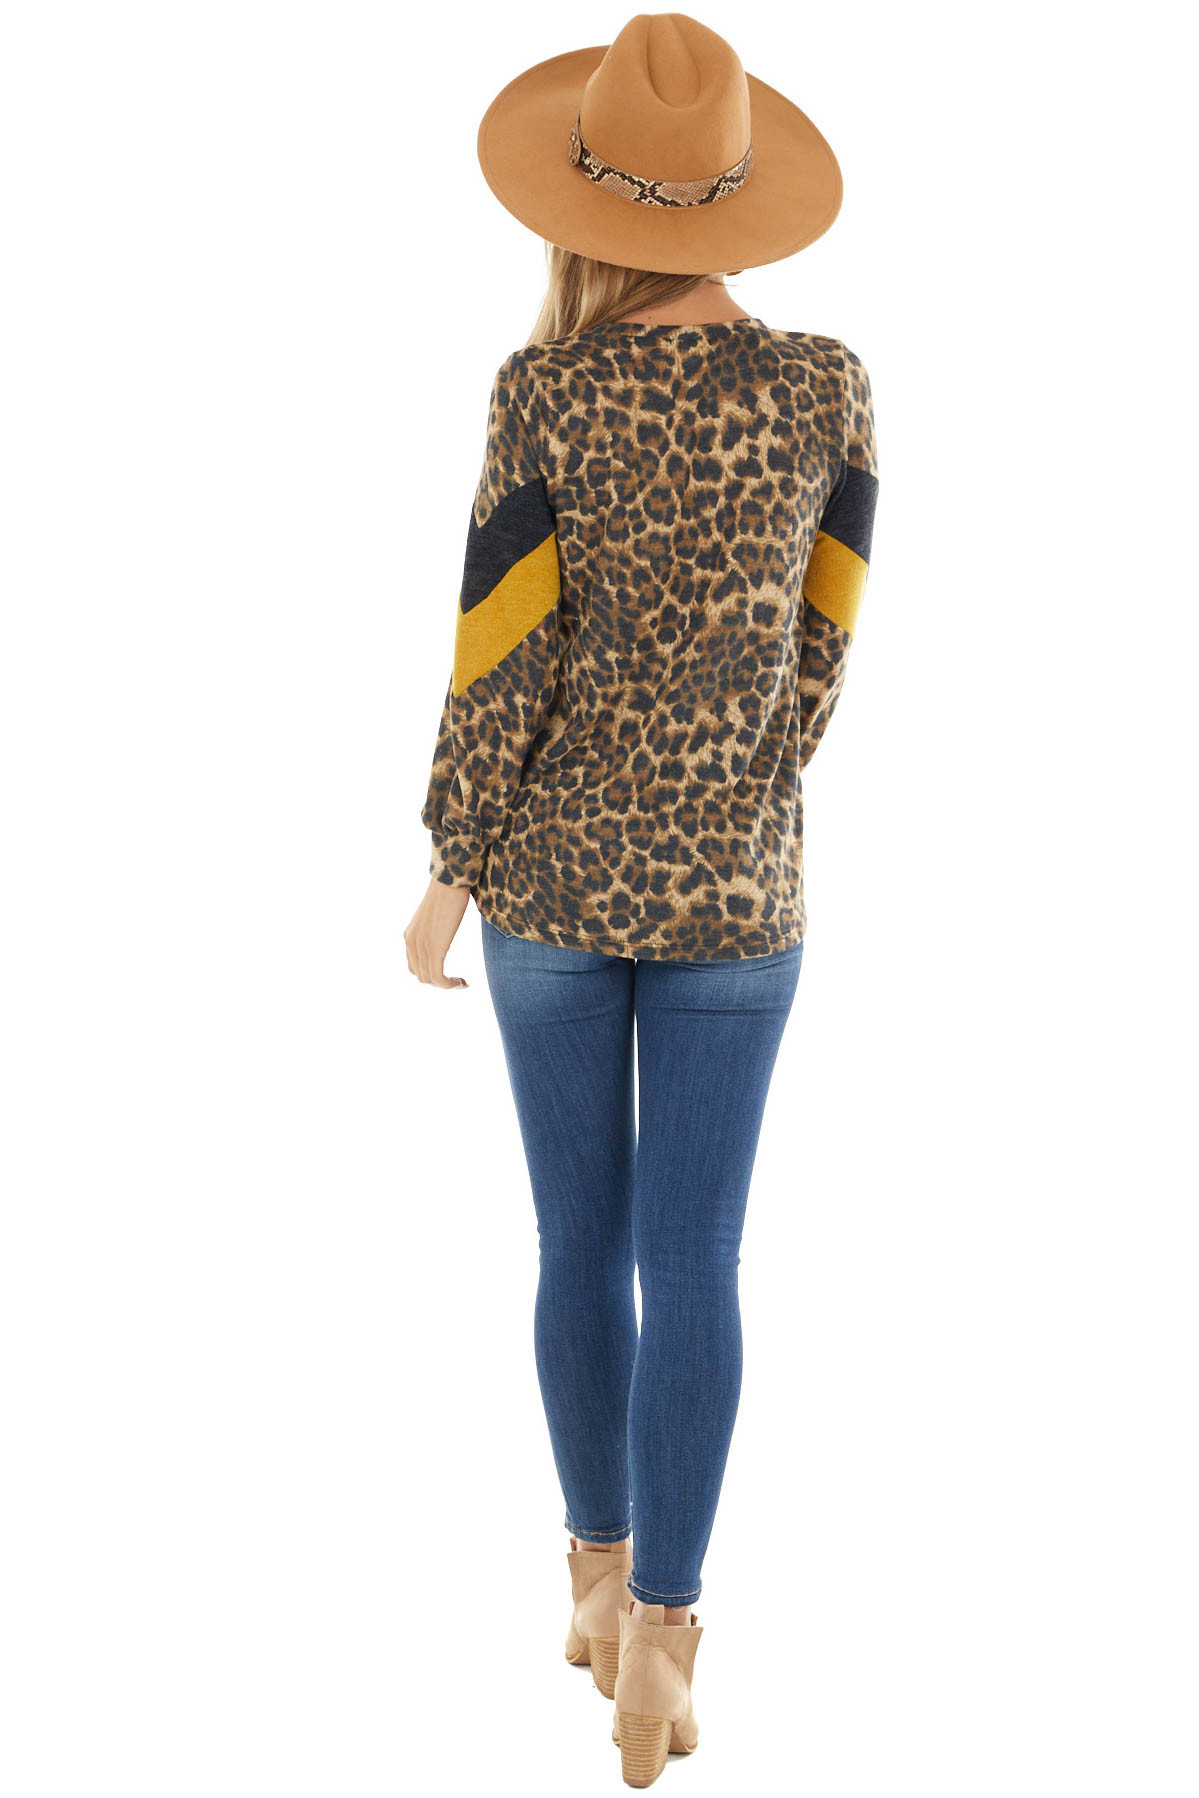 Camel Leopard Print Bubble Sleeve Top with Chevron Detail